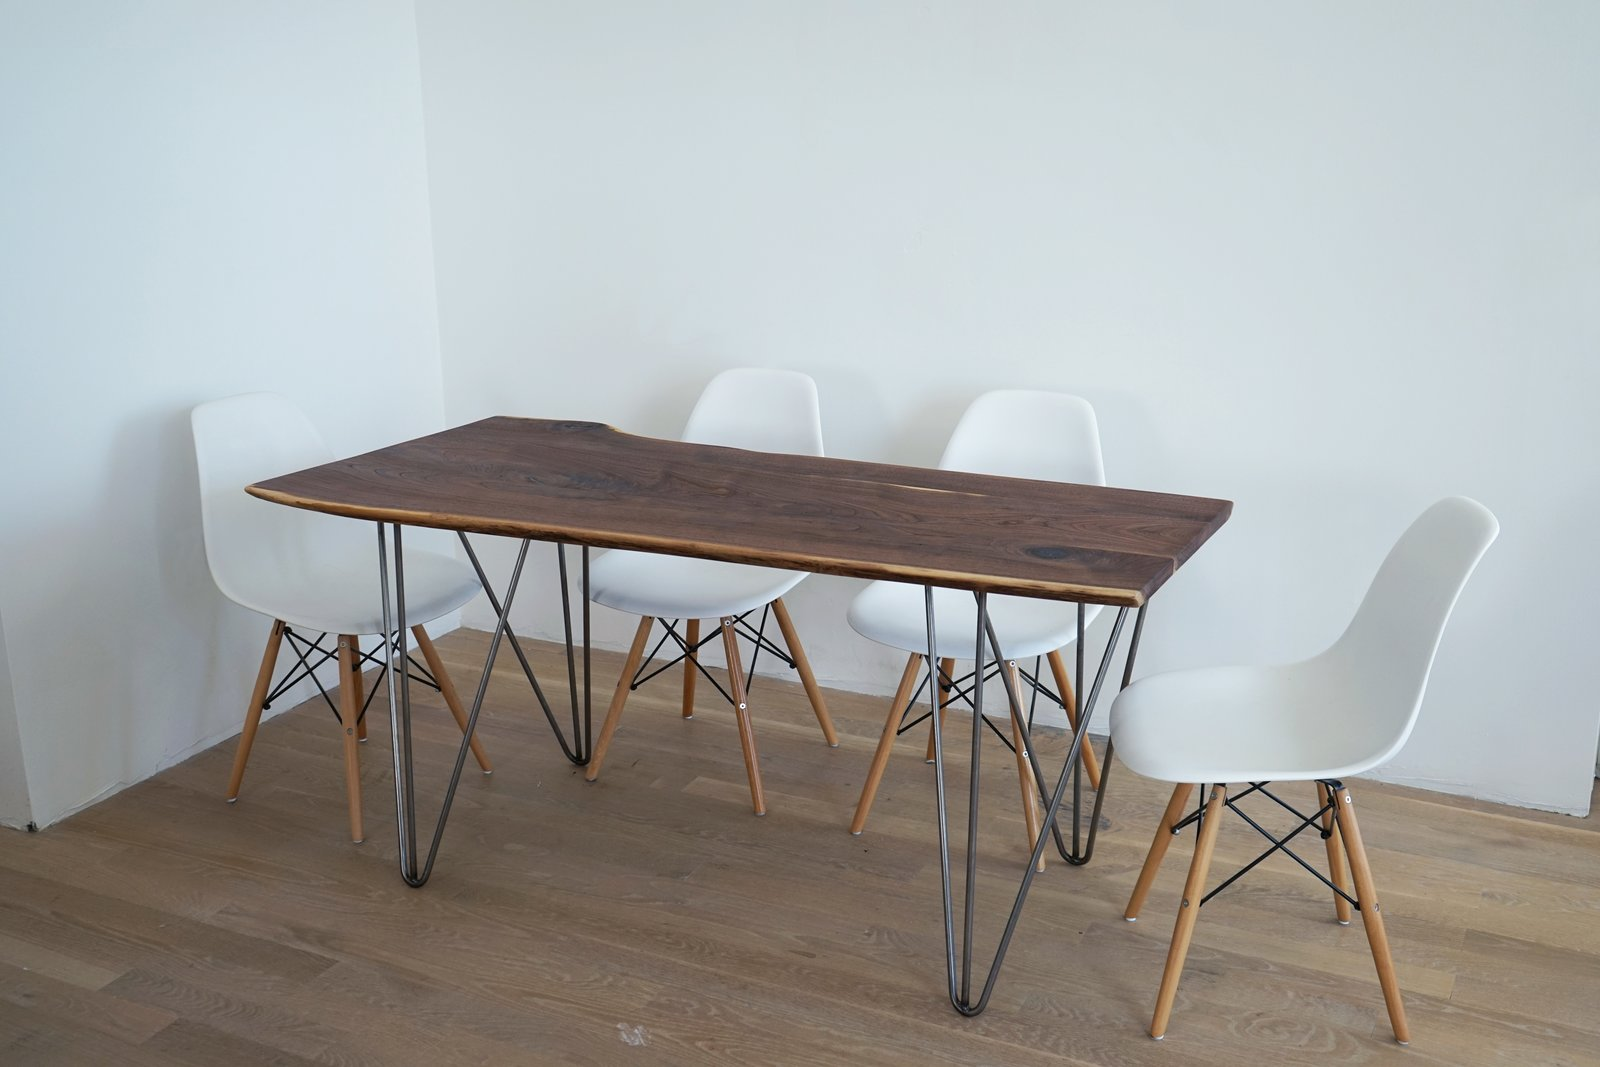 Photo 12 of 13 in Dwell Made Presents: DIY Walnut Dining Table